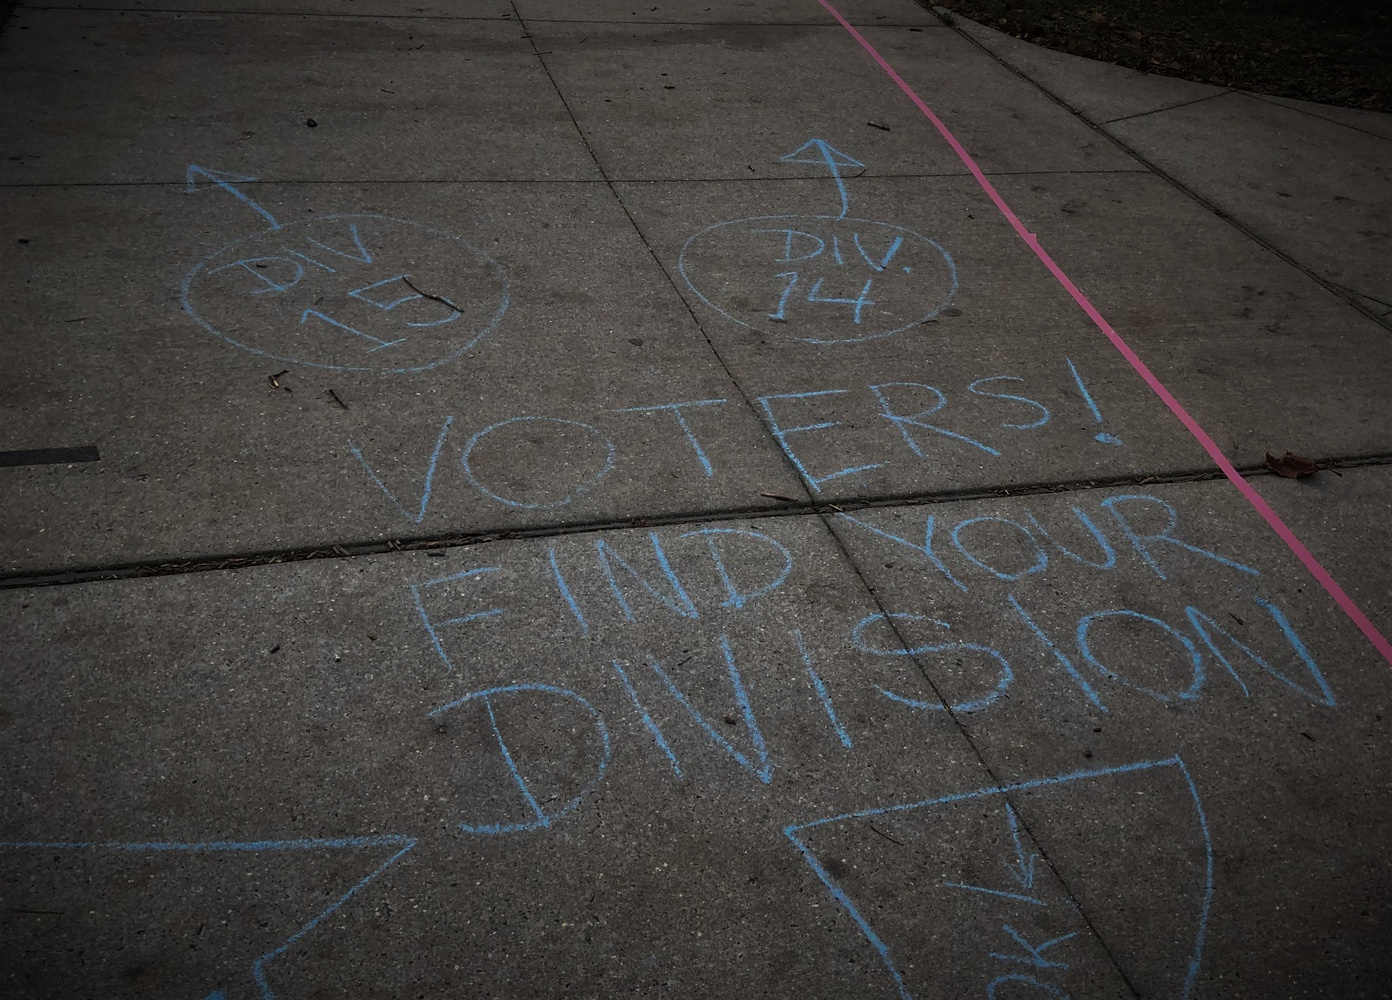 With chalk and tape, poll workers in Philadelphia attempt to guide voters to their appropriate division, all while maintaining safe social distance.